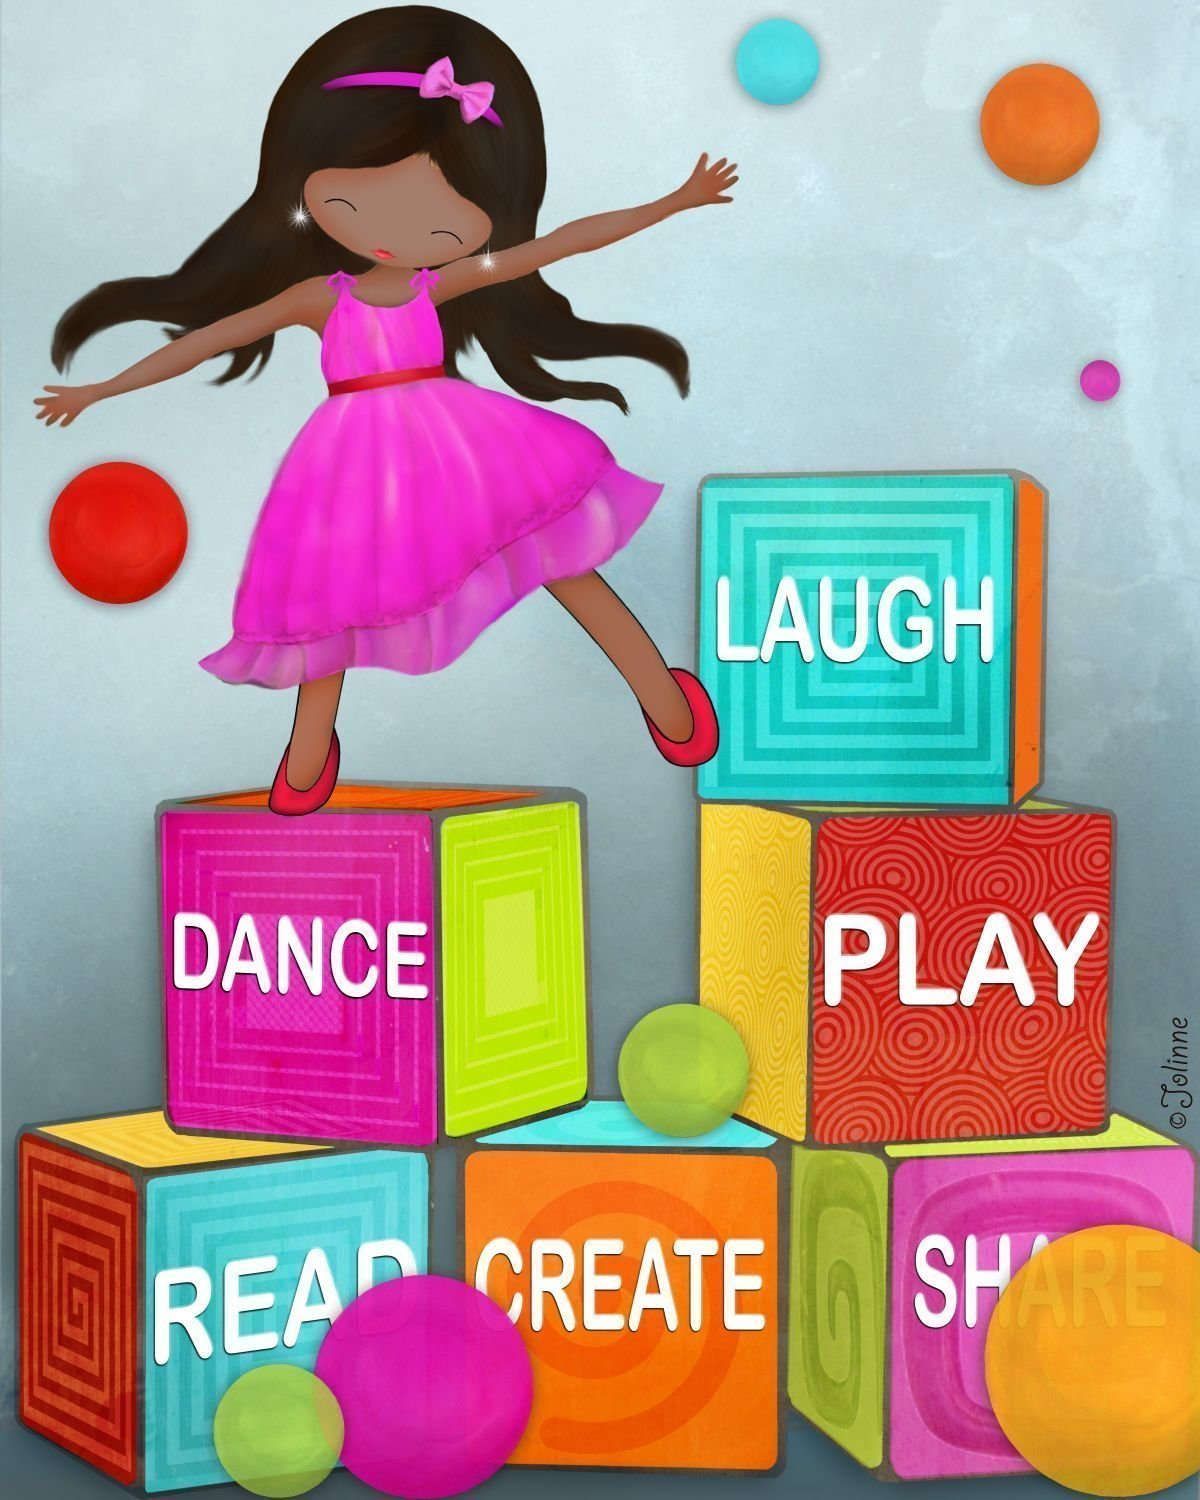 amazon com kids playroom wall pictures colorful girls room art amazon com kids playroom wall pictures colorful girls room art posters for children s space unframed set of 4 prints 8 x10 11 x14 personalized